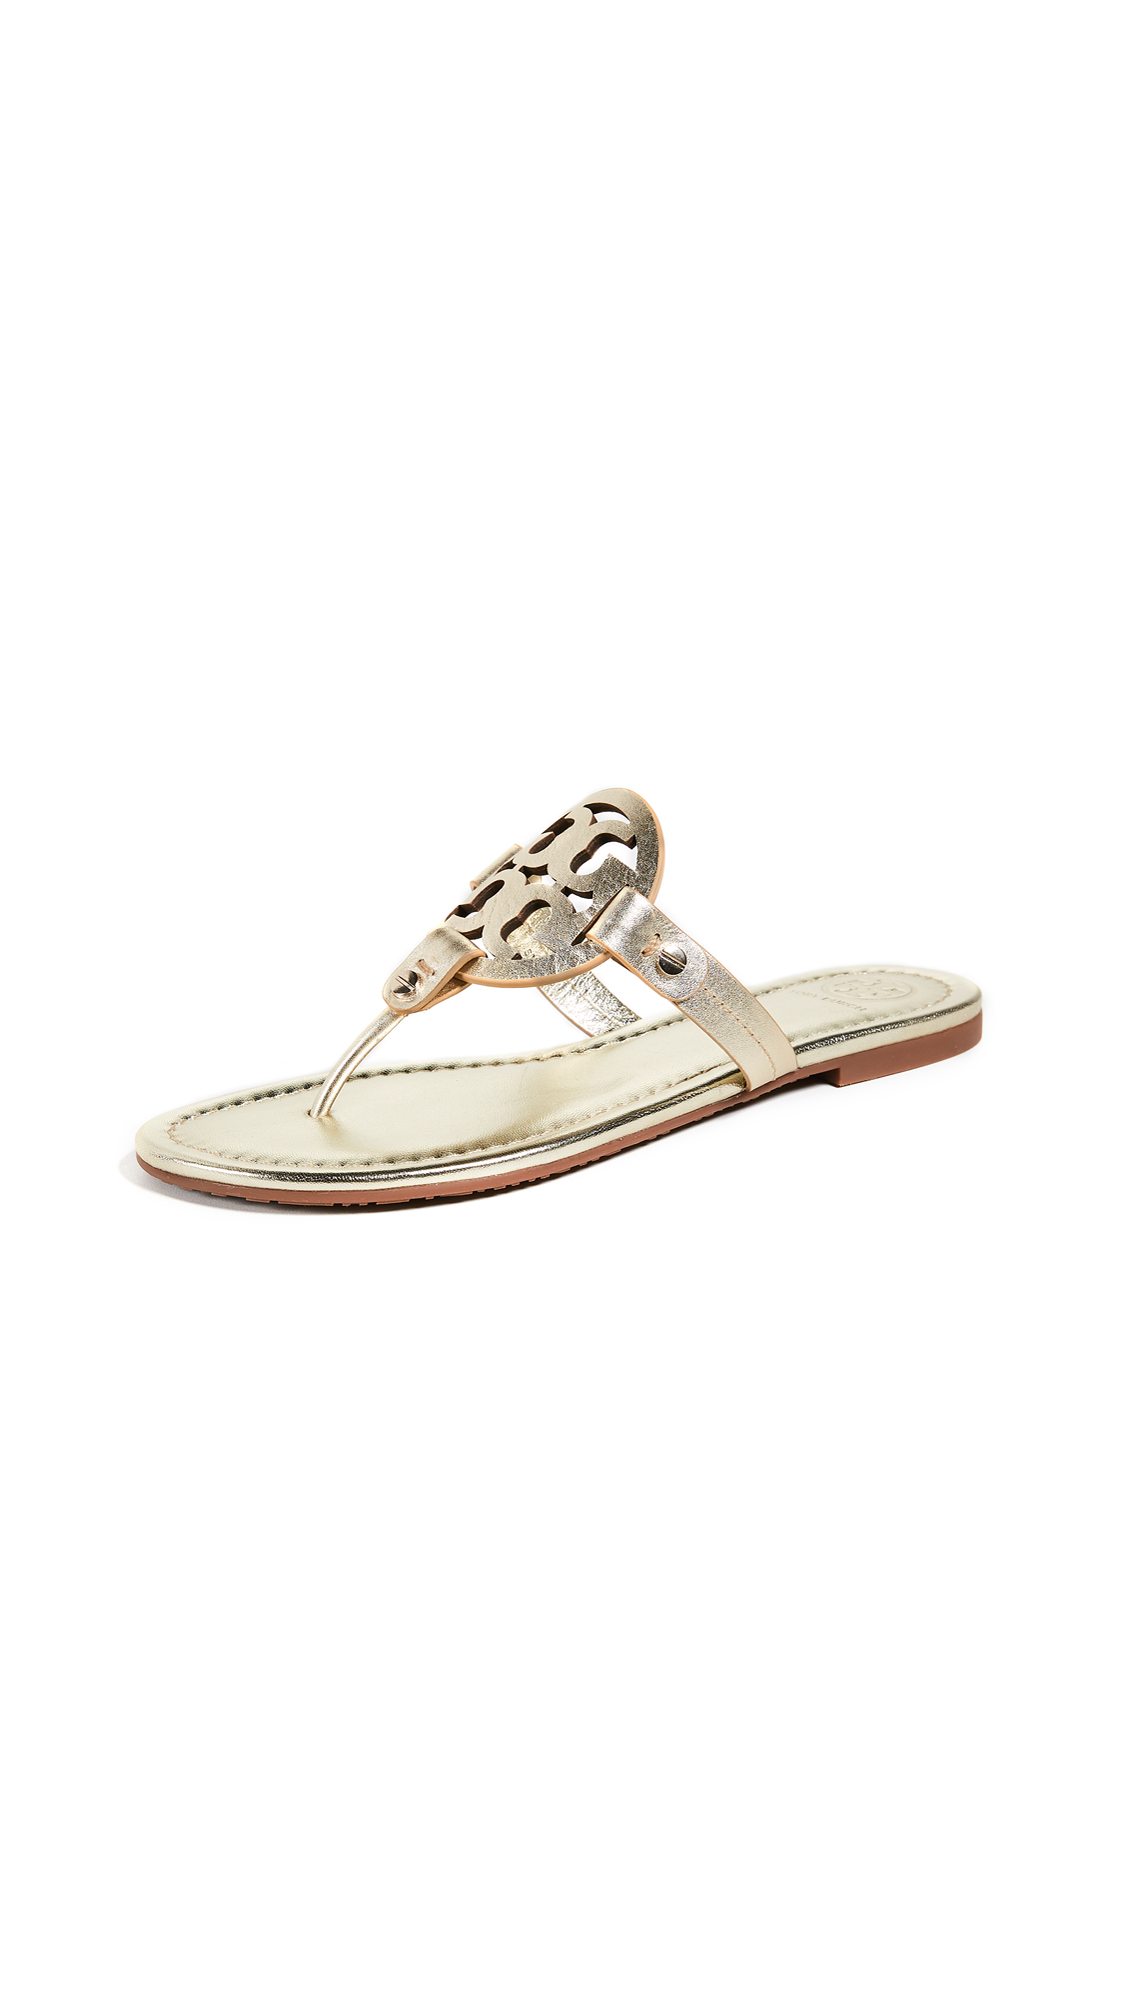 Tory Burch Miller Thong Sandals - Spark Gold